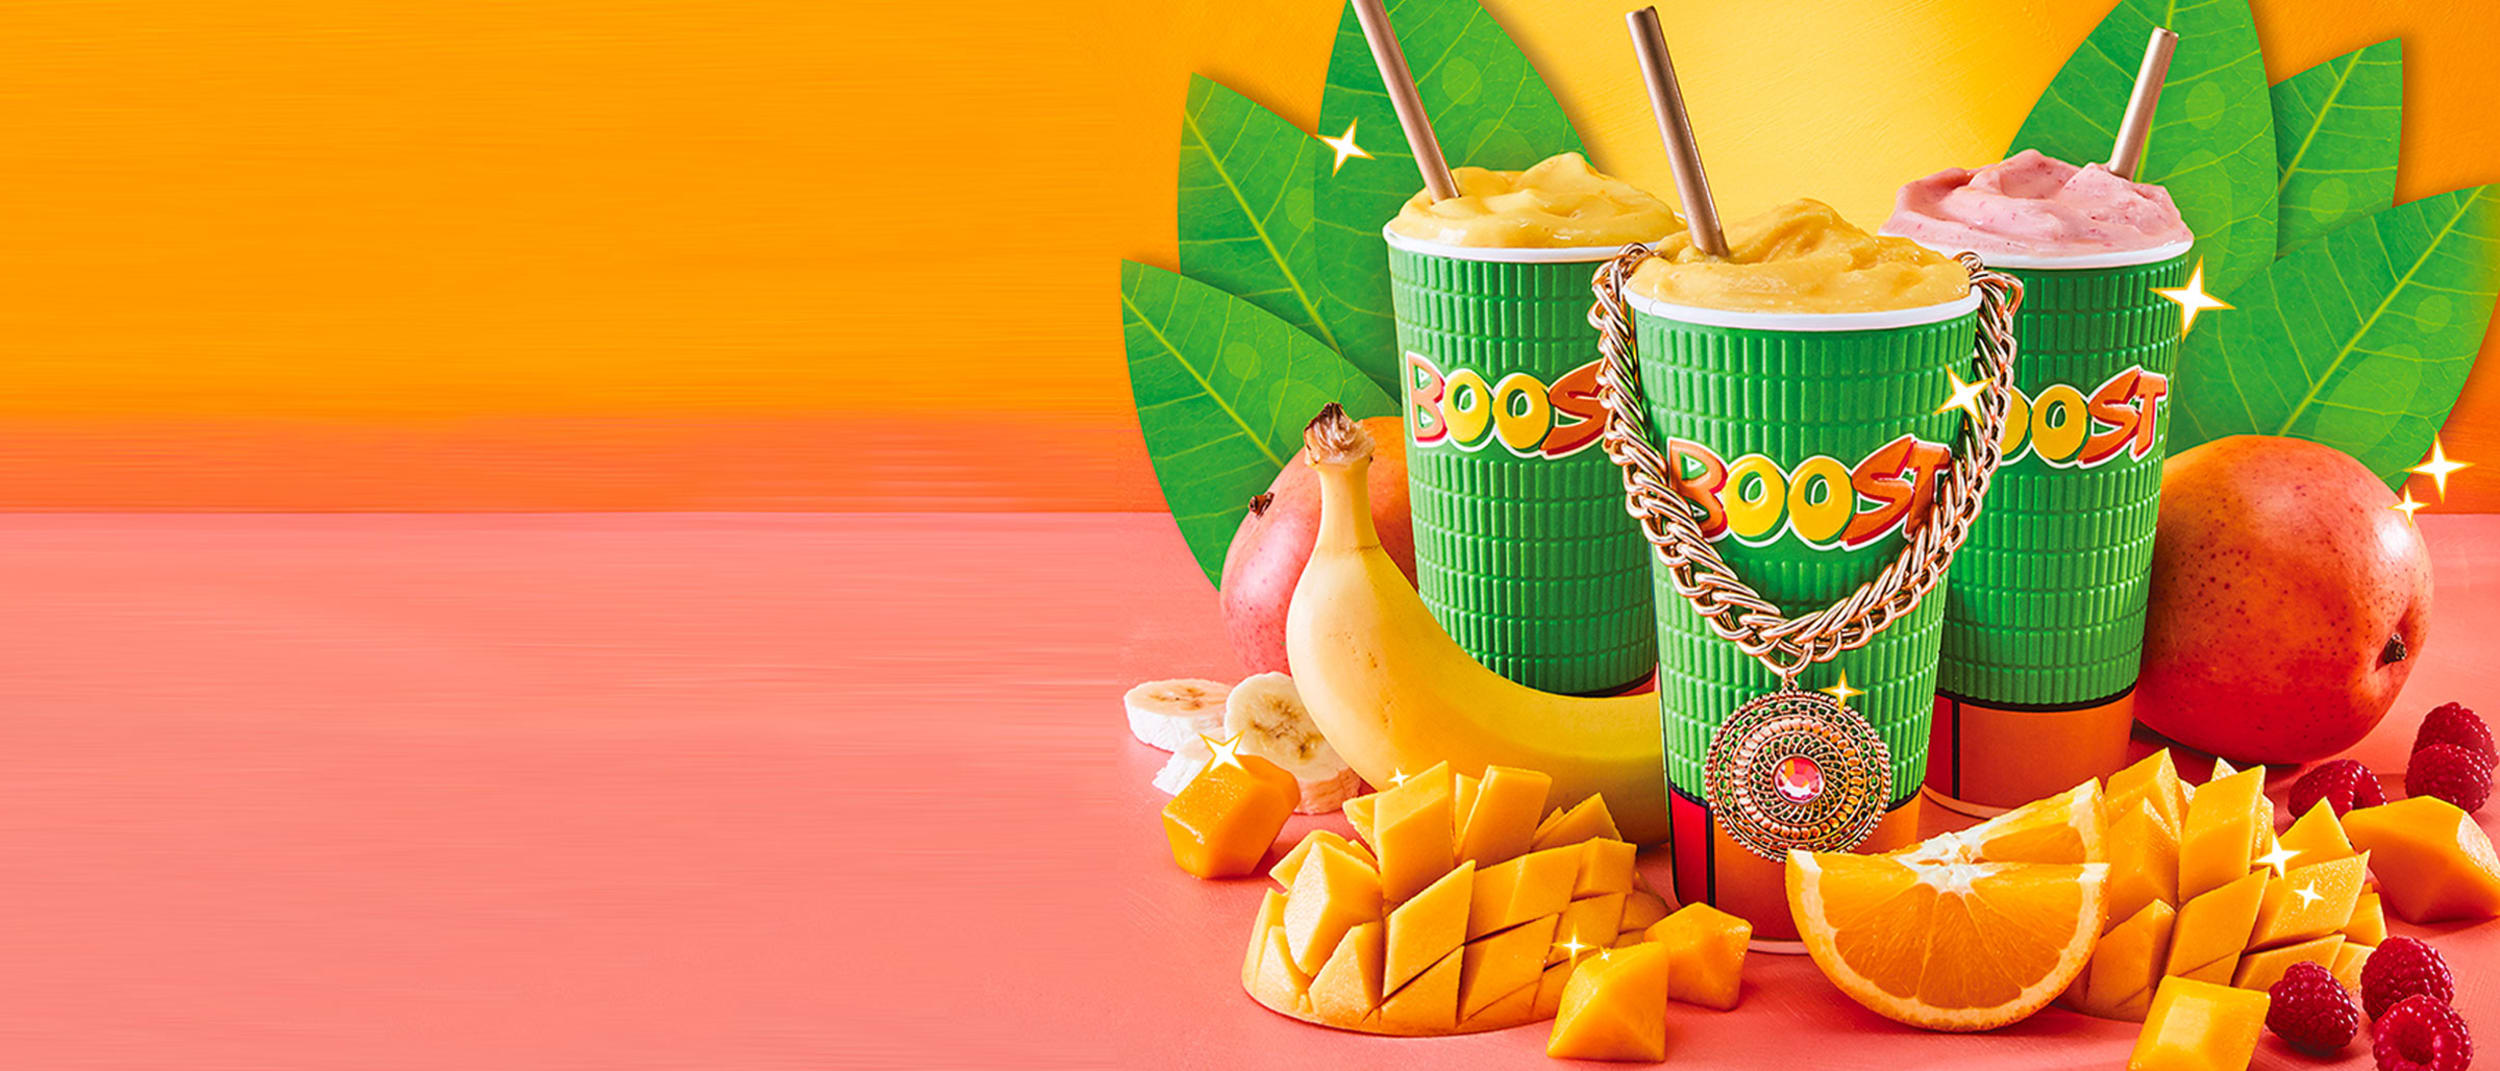 Boost Juice: mango king of fruits